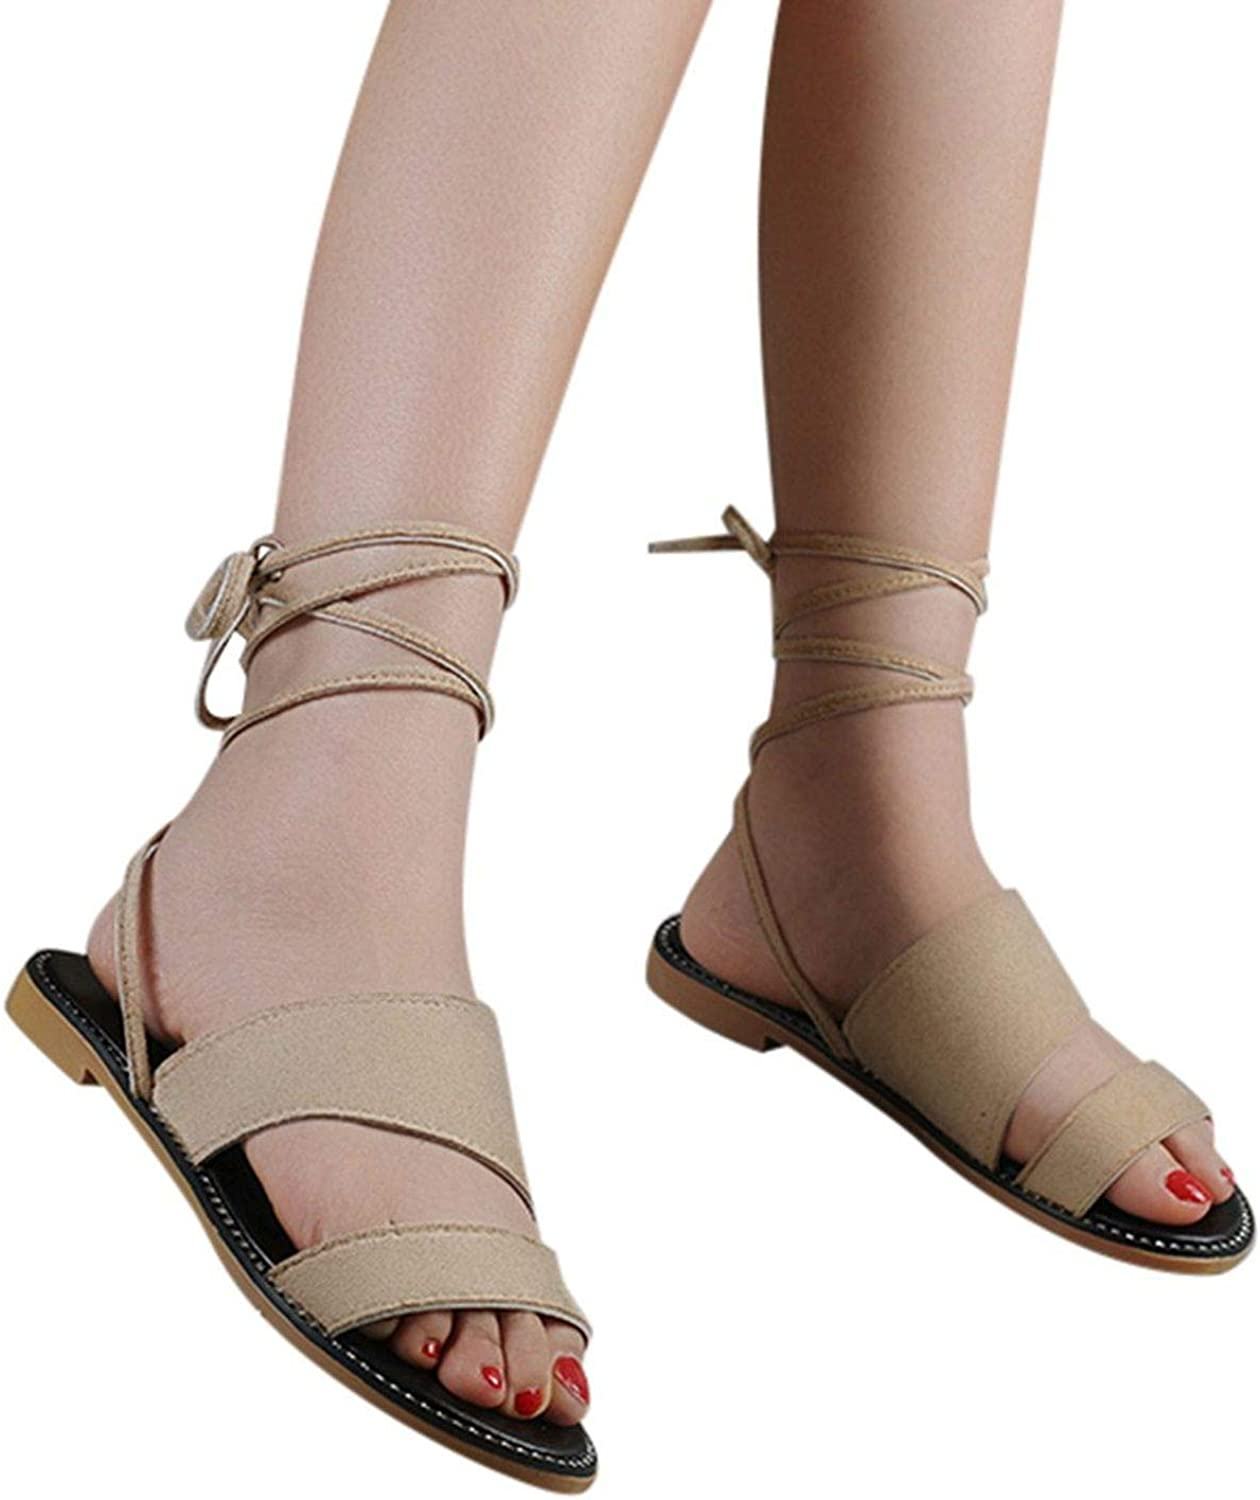 FINDYOU Women's Sandals Ankle Strap Summer Ladies Beach Party shoes Flat Heels Sandal for Girls Casual Rome Open Toe